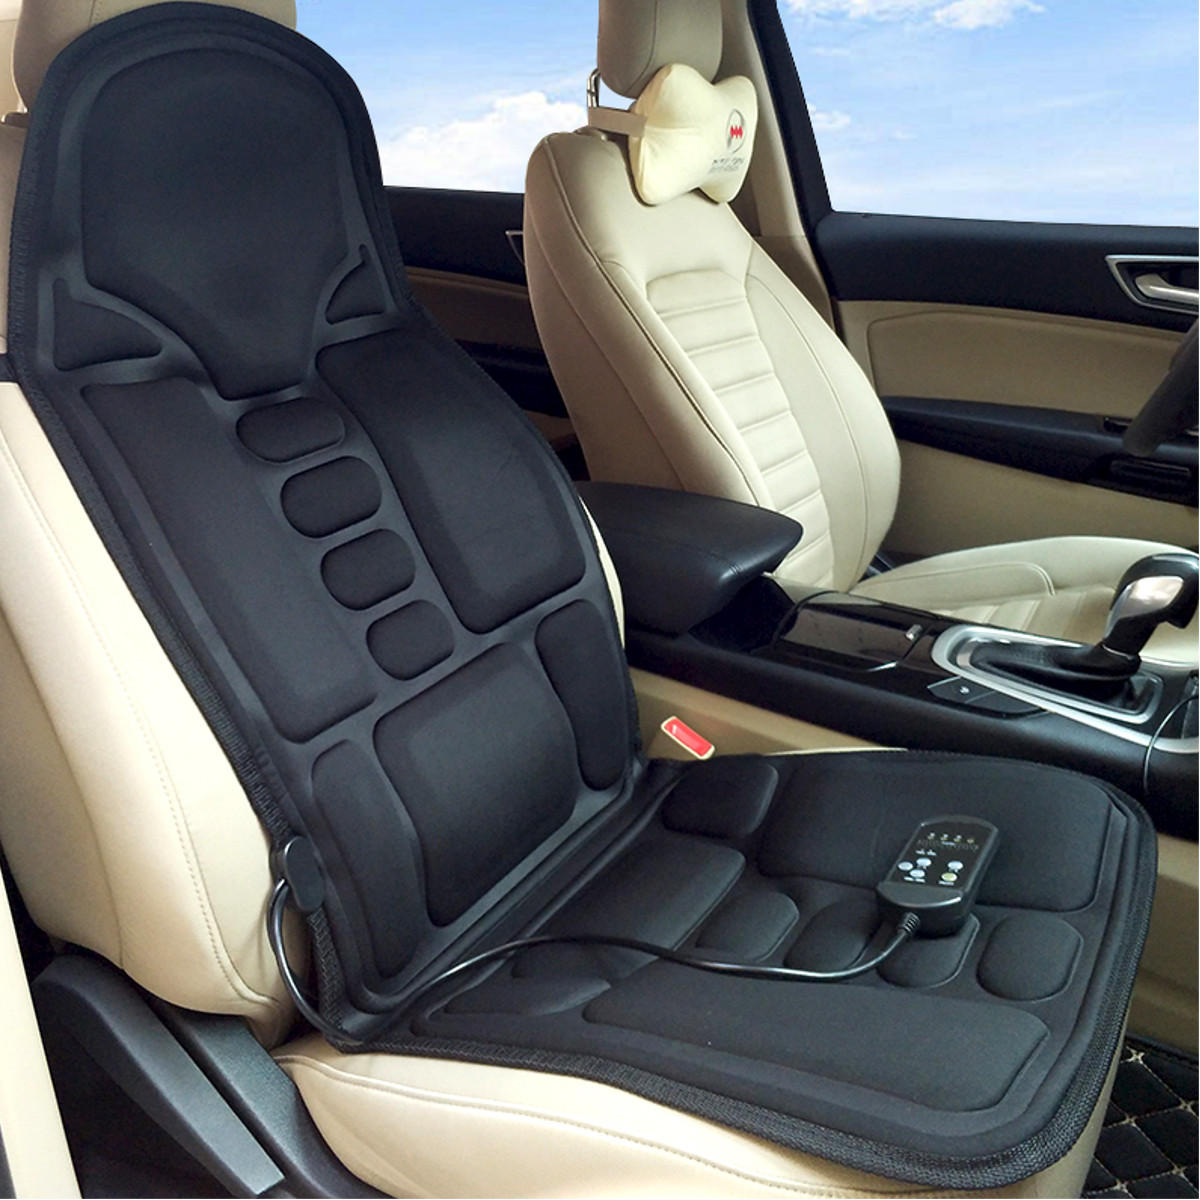 Car Massage Cushion Car Home Full Body Cervical Massager Massage Car Seat Cushion